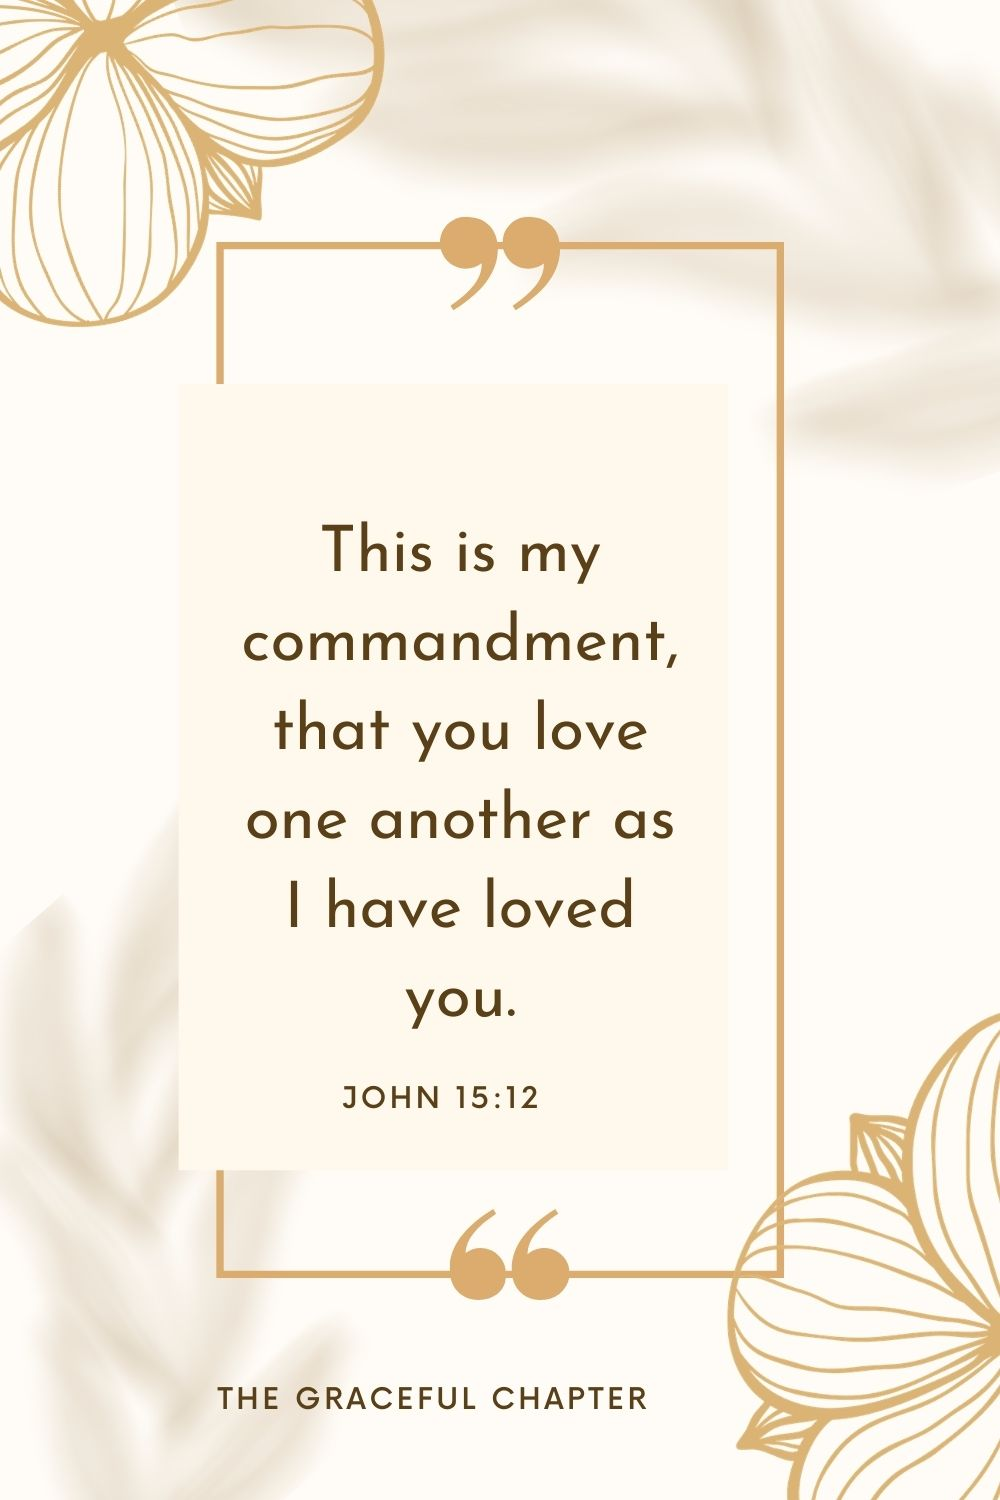 This is my commandment, that you love one another as I have loved you.  John 15:12